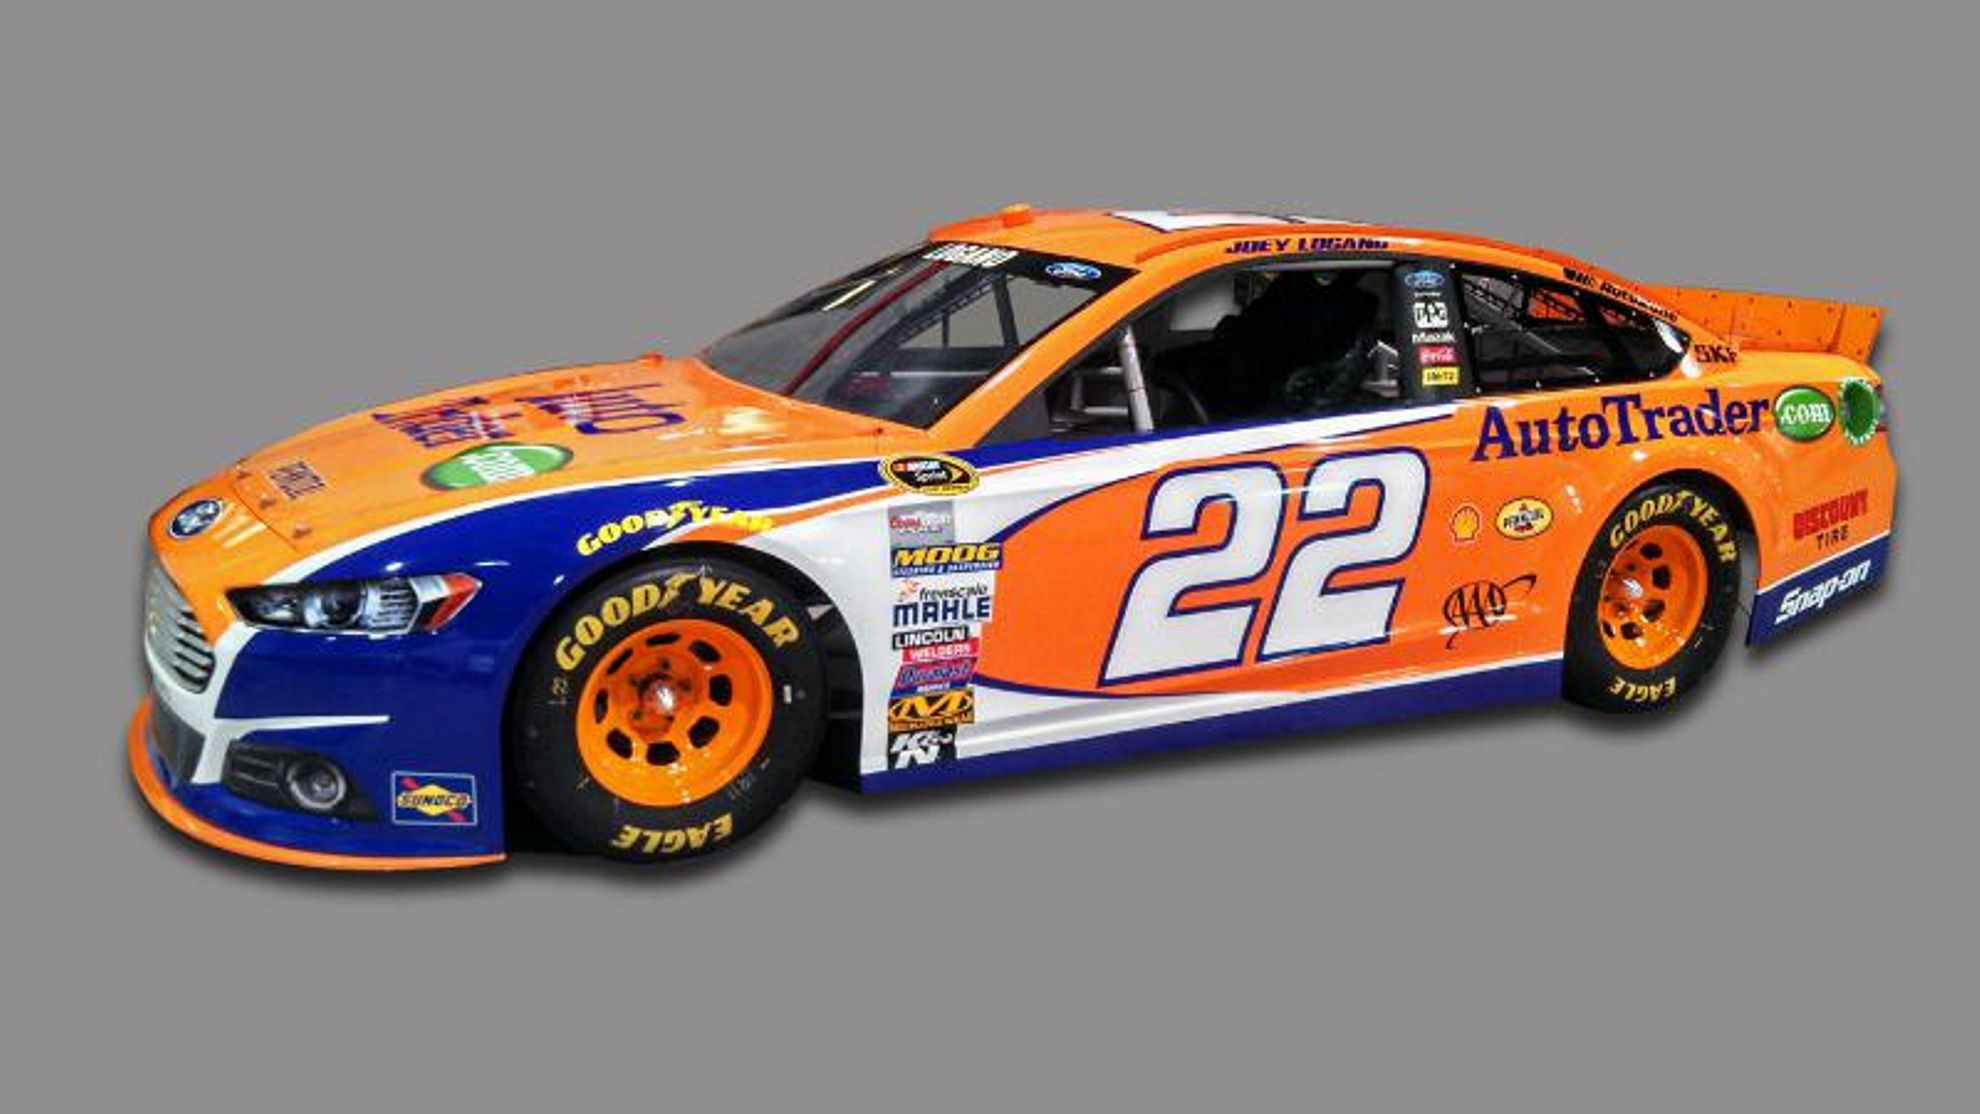 Autotrader Joins Team Penske As Sponsor Of No 22 Ford Team